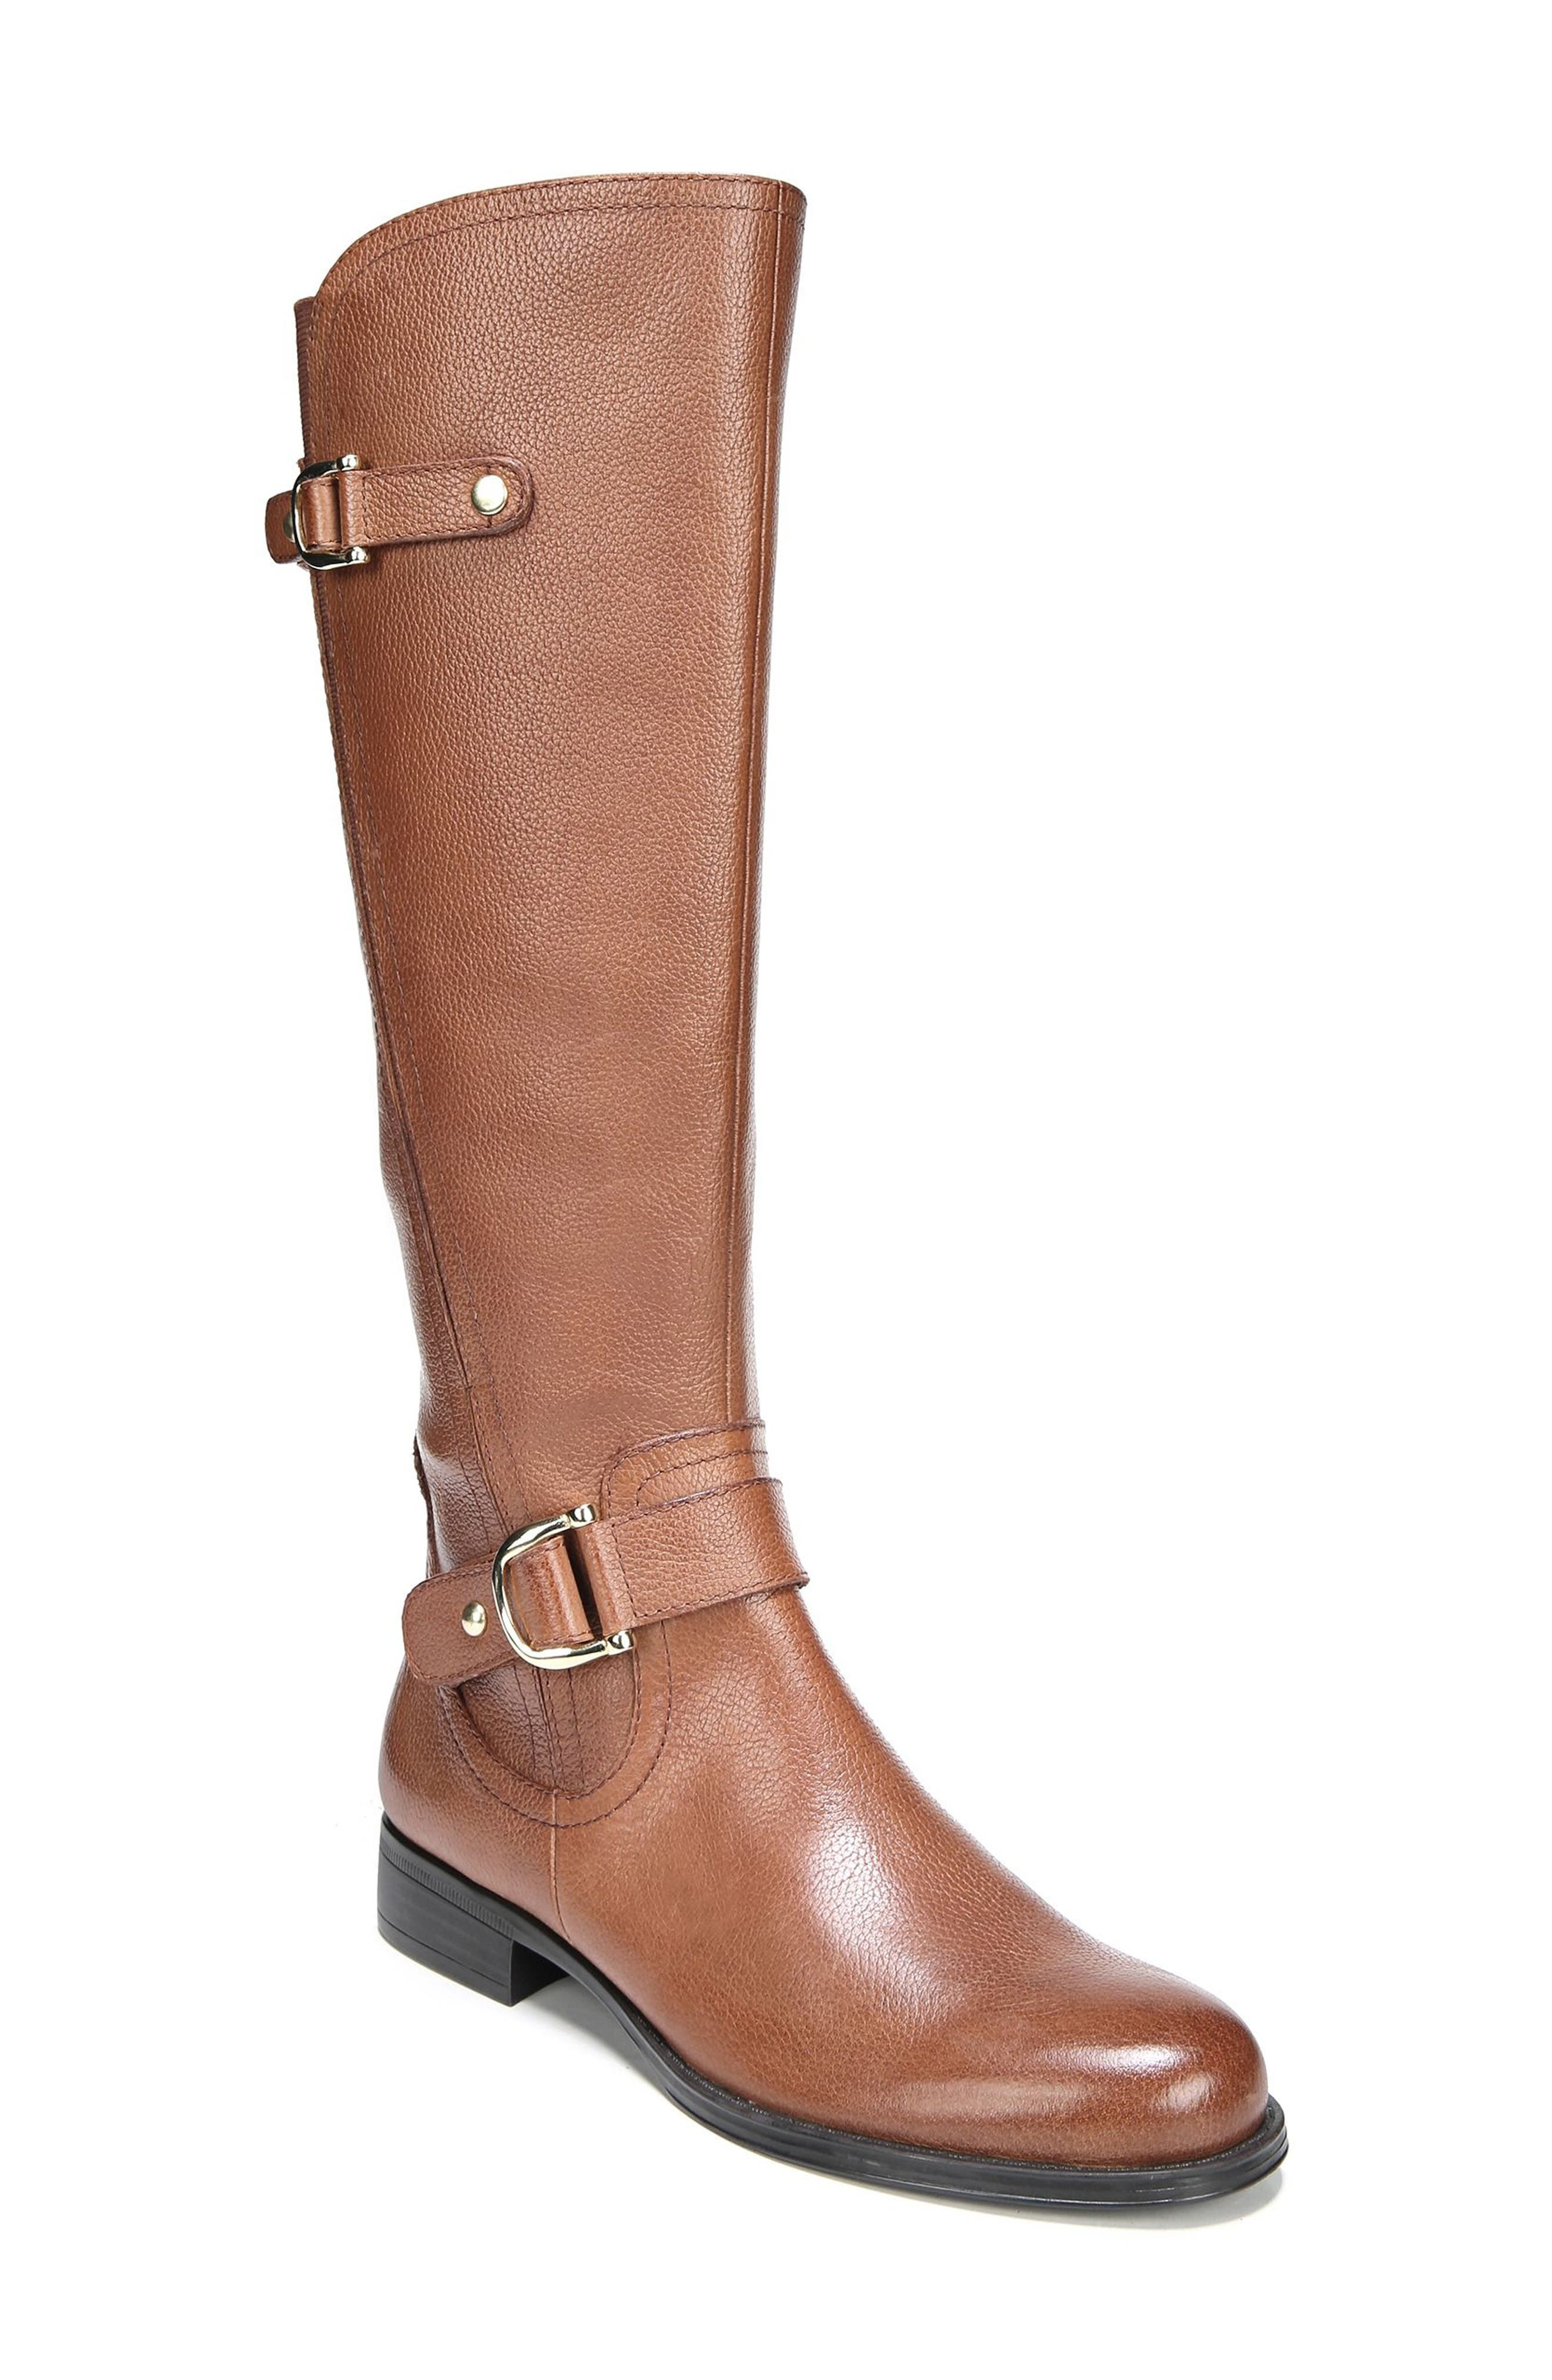 Naturalizer Jenelle Tall Boot Wide Calf- Brown